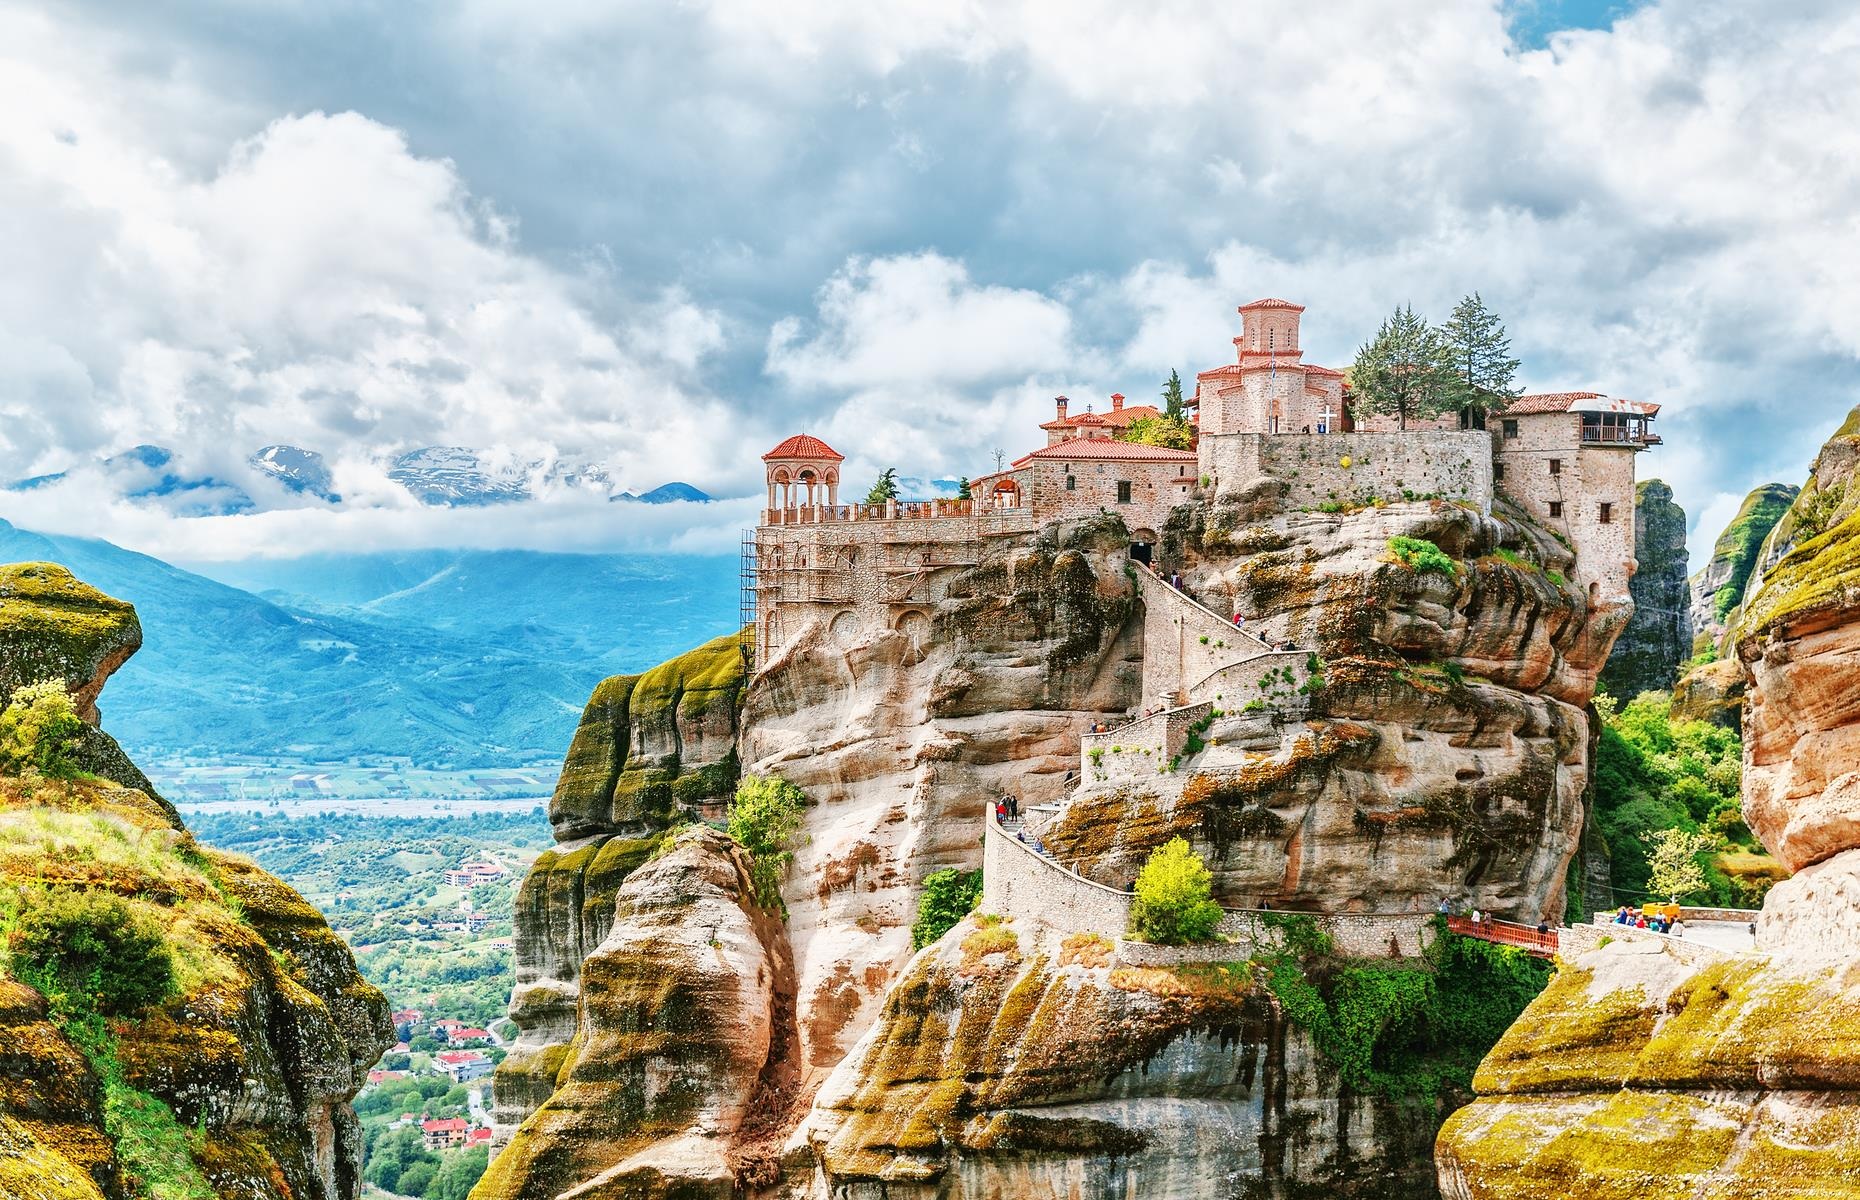 Slide 7 of 31: As clifftop monuments go, the Meteora Monasteries in Greece's Thessaly region are about as famous as they get. And it's not hard to see why. Perched upon 60 million-year old sandstone megaliths which rise an average of 1,000 feet (305m) into the air, these Byzantine monasteries are the rocks' crowning glory. Built between the 14th and 17th centuries, today the area is one of the most visited in Greece, although visitors must climb 200 dizzying steps to reach Roussanou, the most famous of the monasteries.